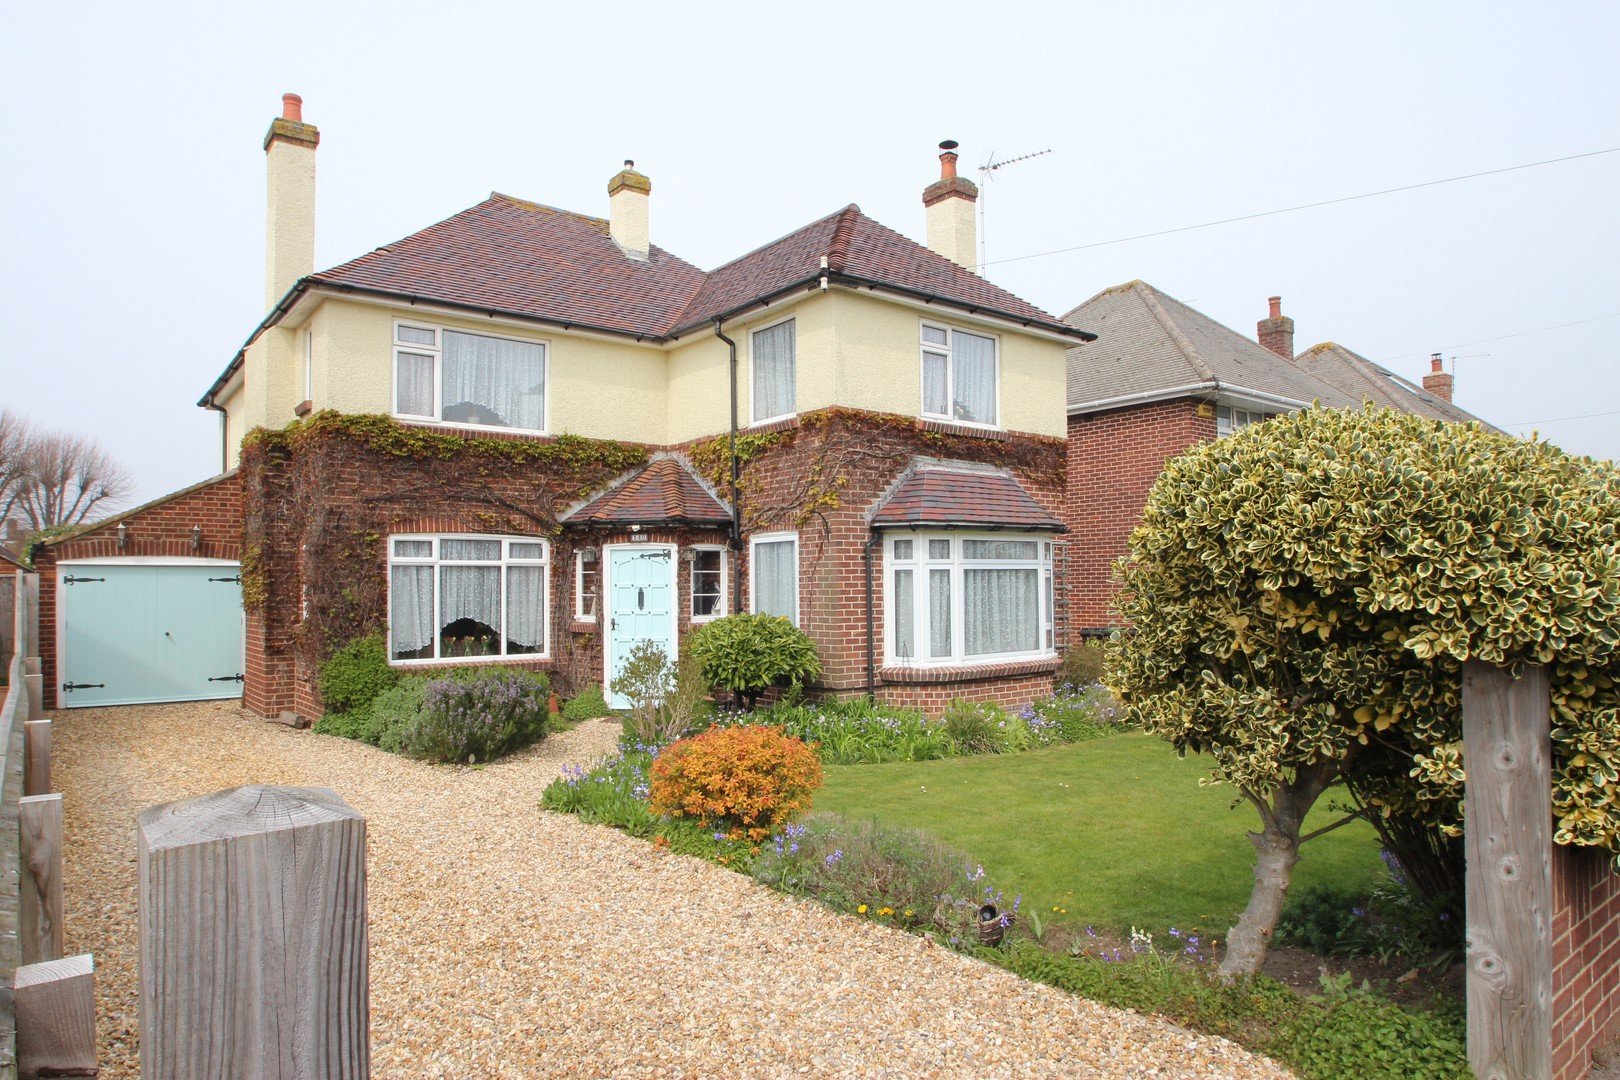 4 Bedroom House in Southbourne